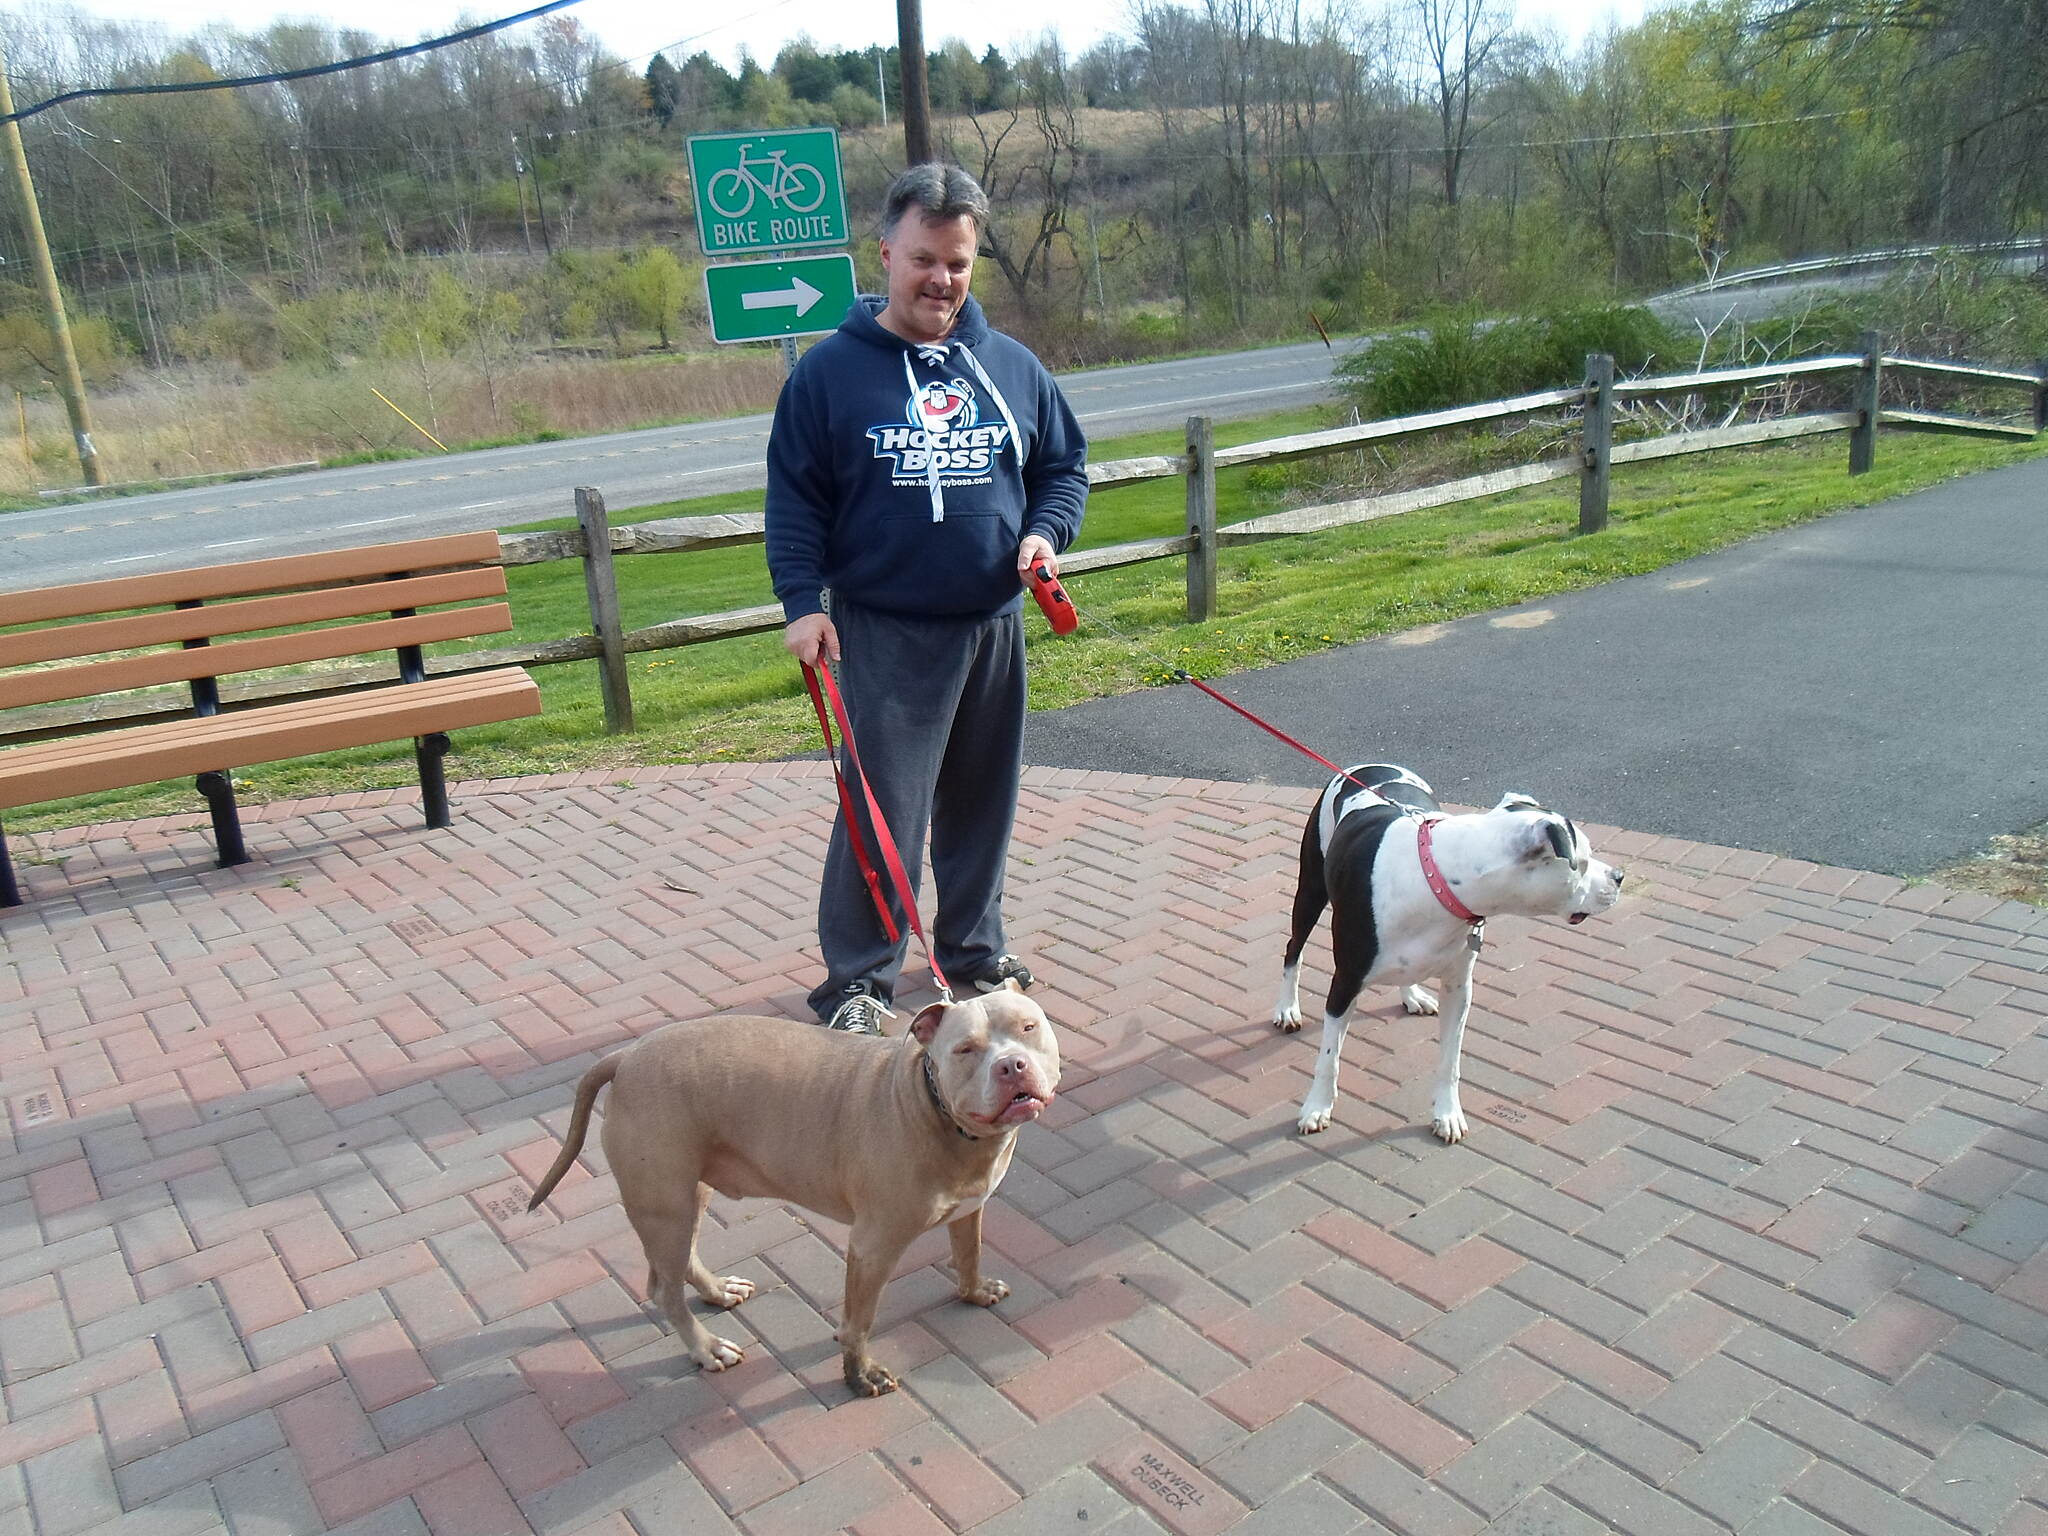 East Branch Brandywine Trail East Branch Brandywine Trail This man and his dogs were enjoying a springtime stroll at the southern trailhead at the intersection of Skelp Level Road and Route 322. Taken April 2015.